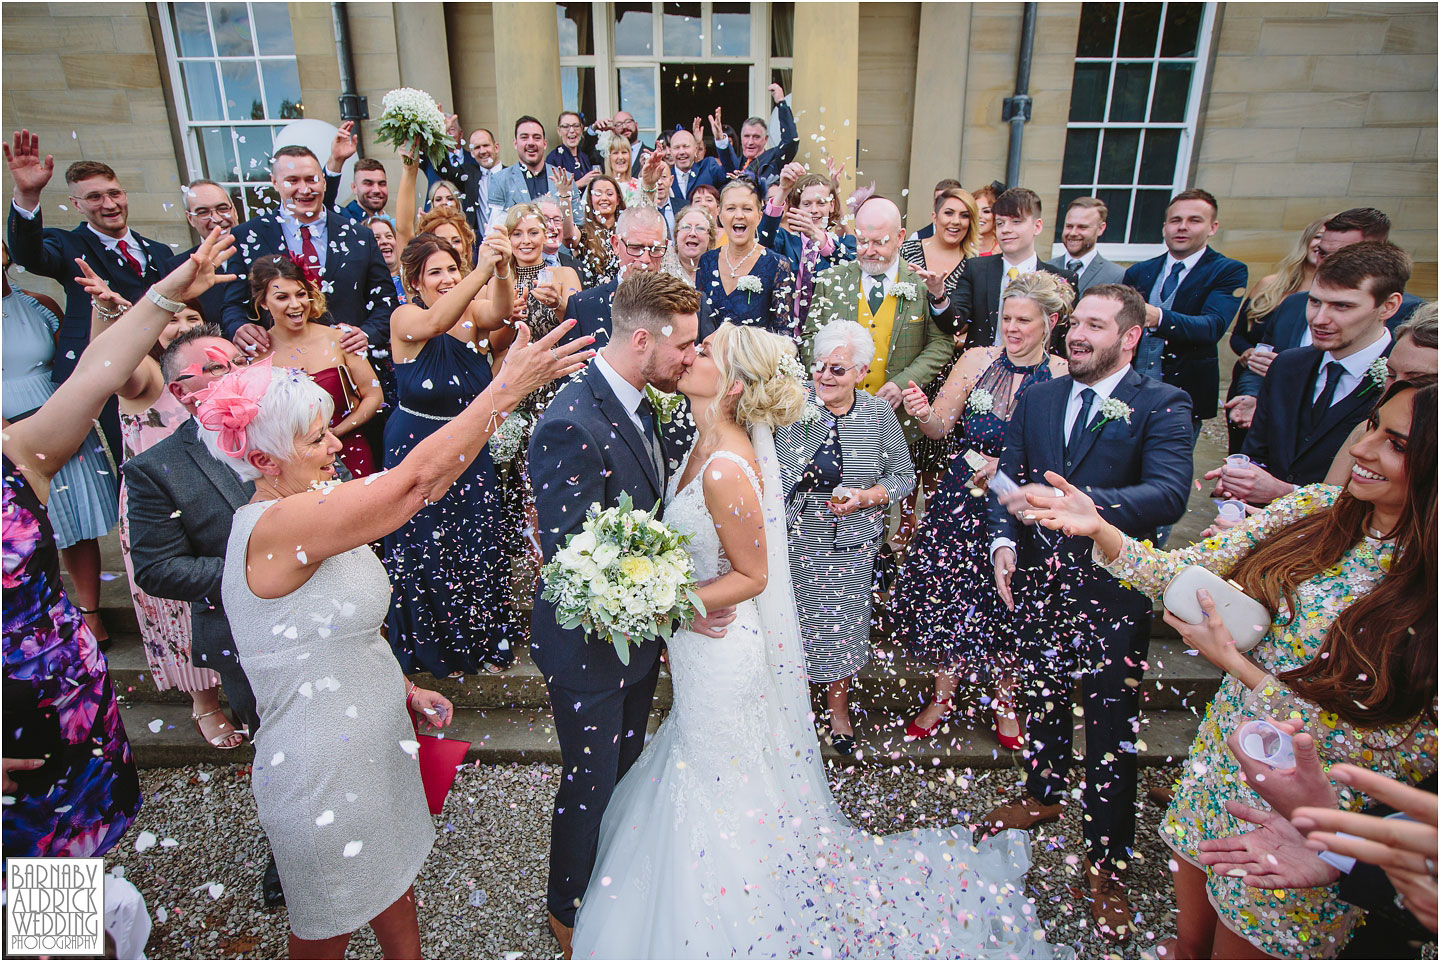 Confetti photo at Saltmarshe Hall Wedding Photos, Wedding photography at Saltmarshe Hall, East Yorkshire Wedding Photos